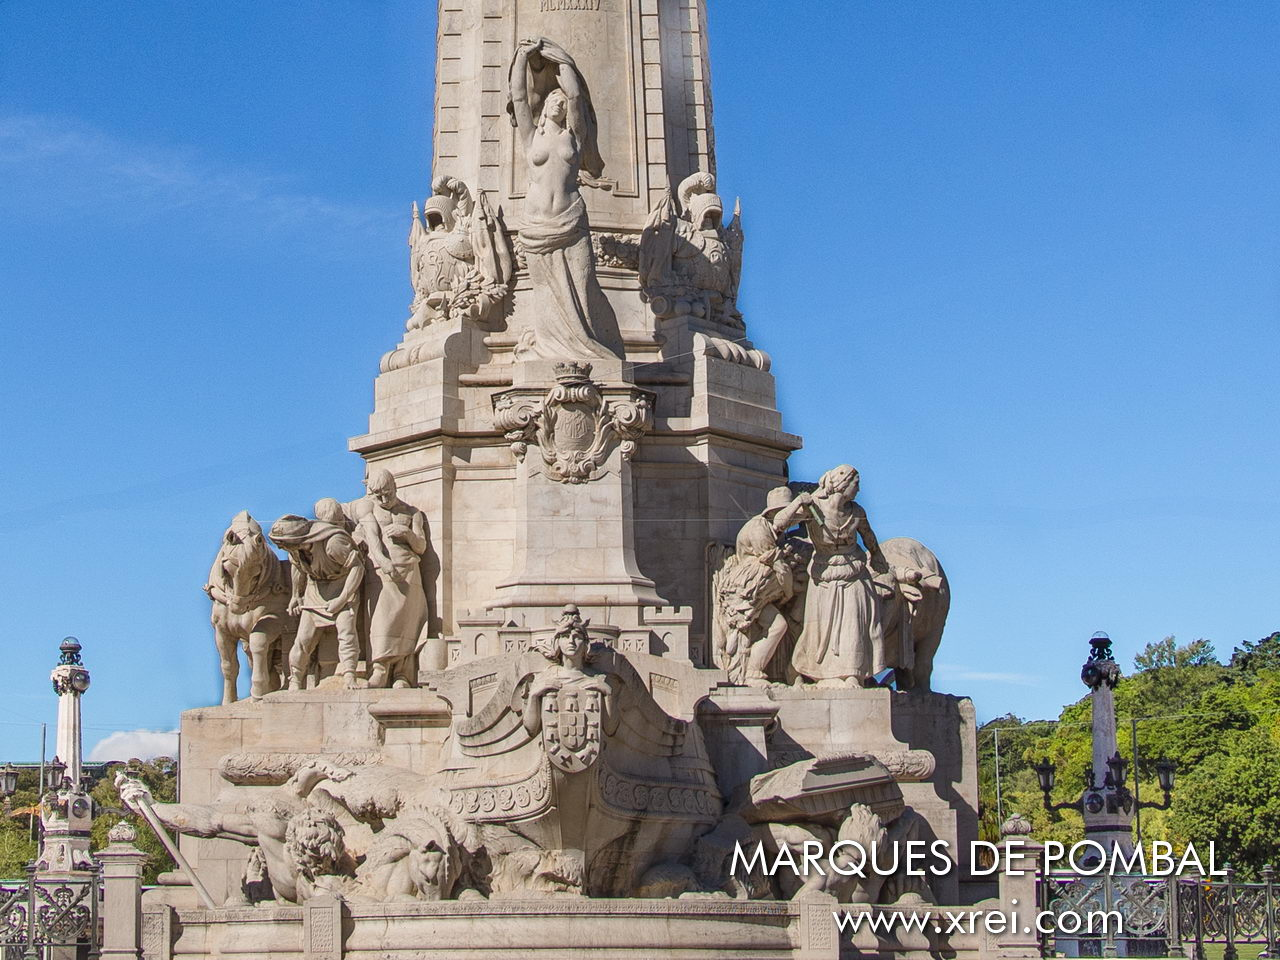 Statues at the base of the Marques de Pombal monument, with the naked woman symbolizing reconstructed Lisbon, together with the sculptures of Pluto and Poseidon symbolizing the improvements to Lisbon made by Marques de Pombal. The bow of the Nau symbolizing the renewal of the merchant navy. Sculptural group on the right side representing agriculture, the Nets on the left side representing fishing.